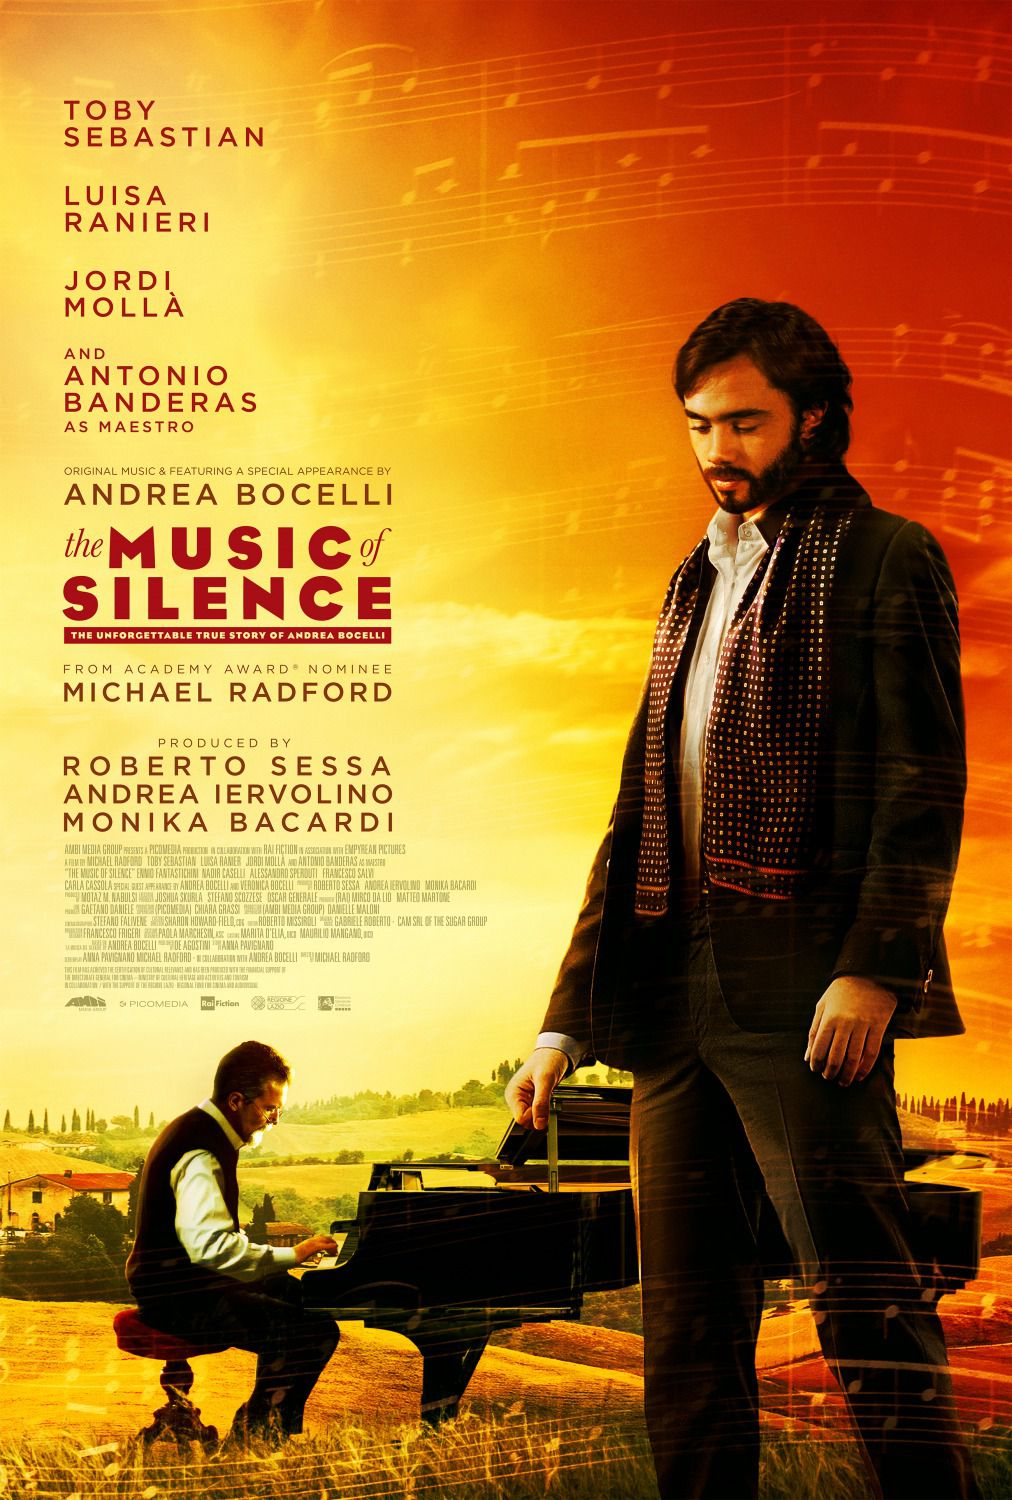 The Music of Silence - La Musica del Silenzio - Bocelli life film poster